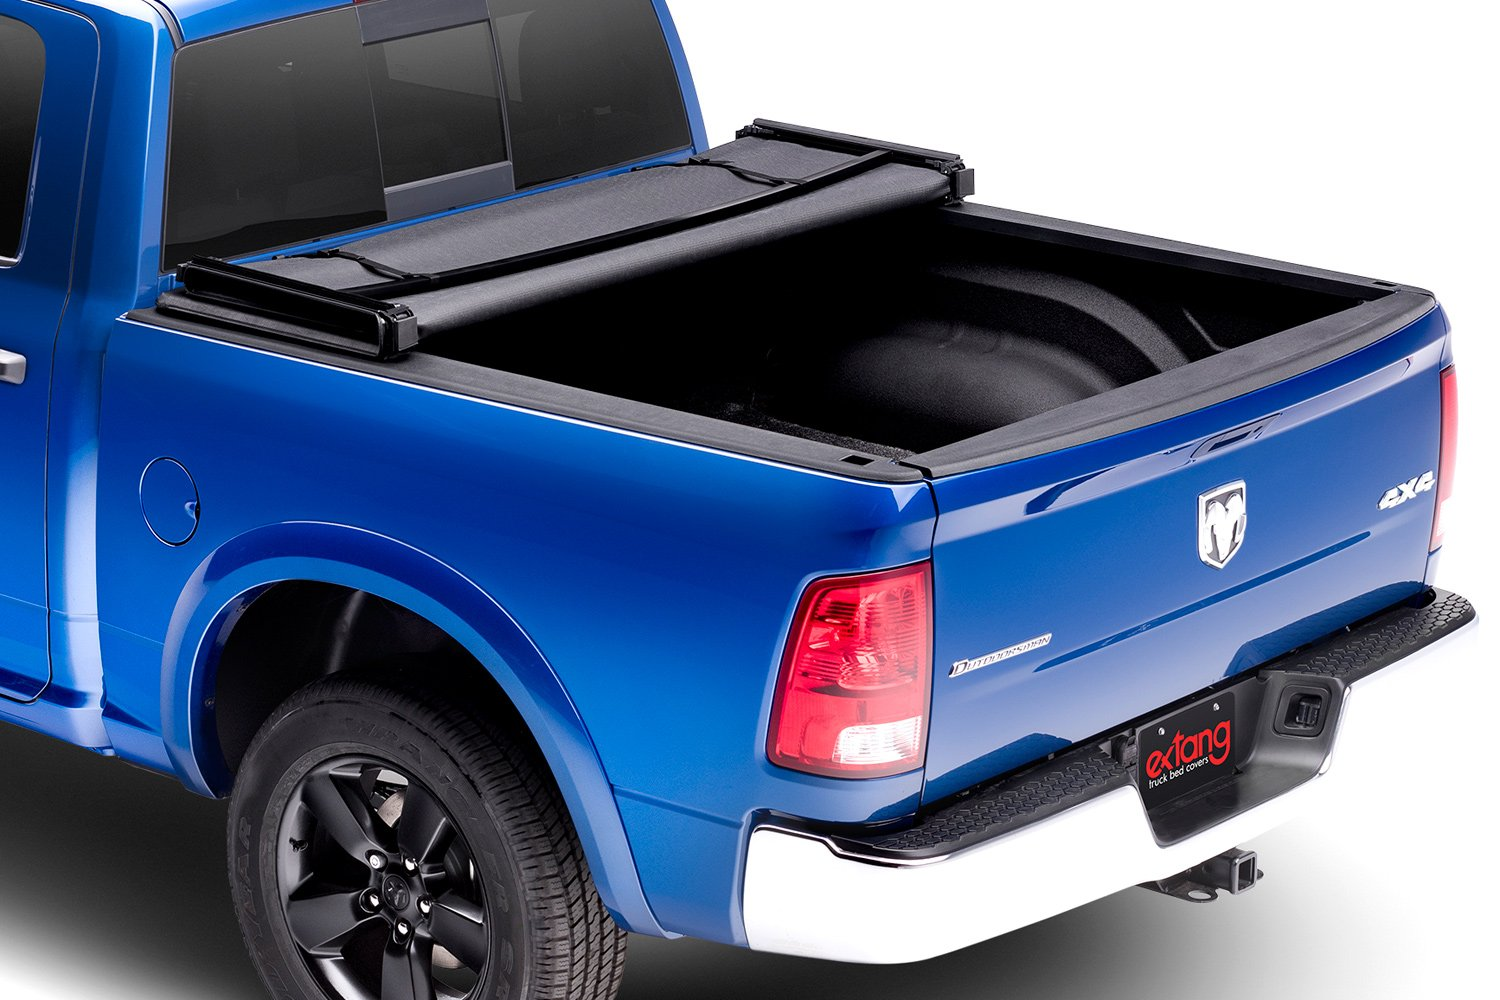 f150 tonneau covers, ford f-150 bed covers - 1961 - 2017